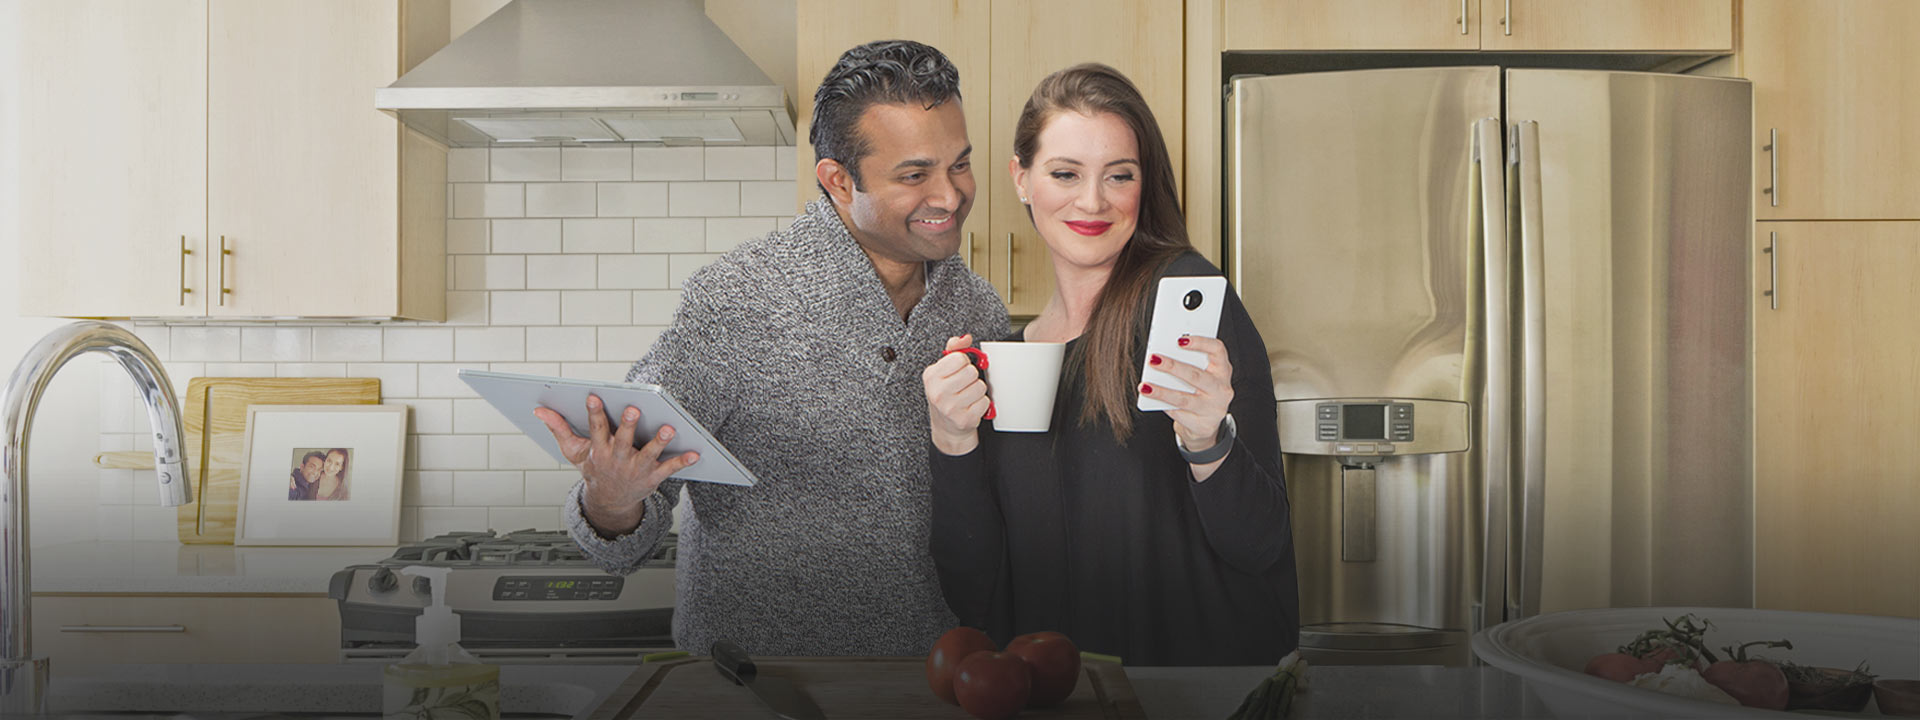 A couple standing together in modern kitchen. The man is holding a tablet and the woman is holding a mobile phone. They are both smiling and looking at the screen on the mobile phone.